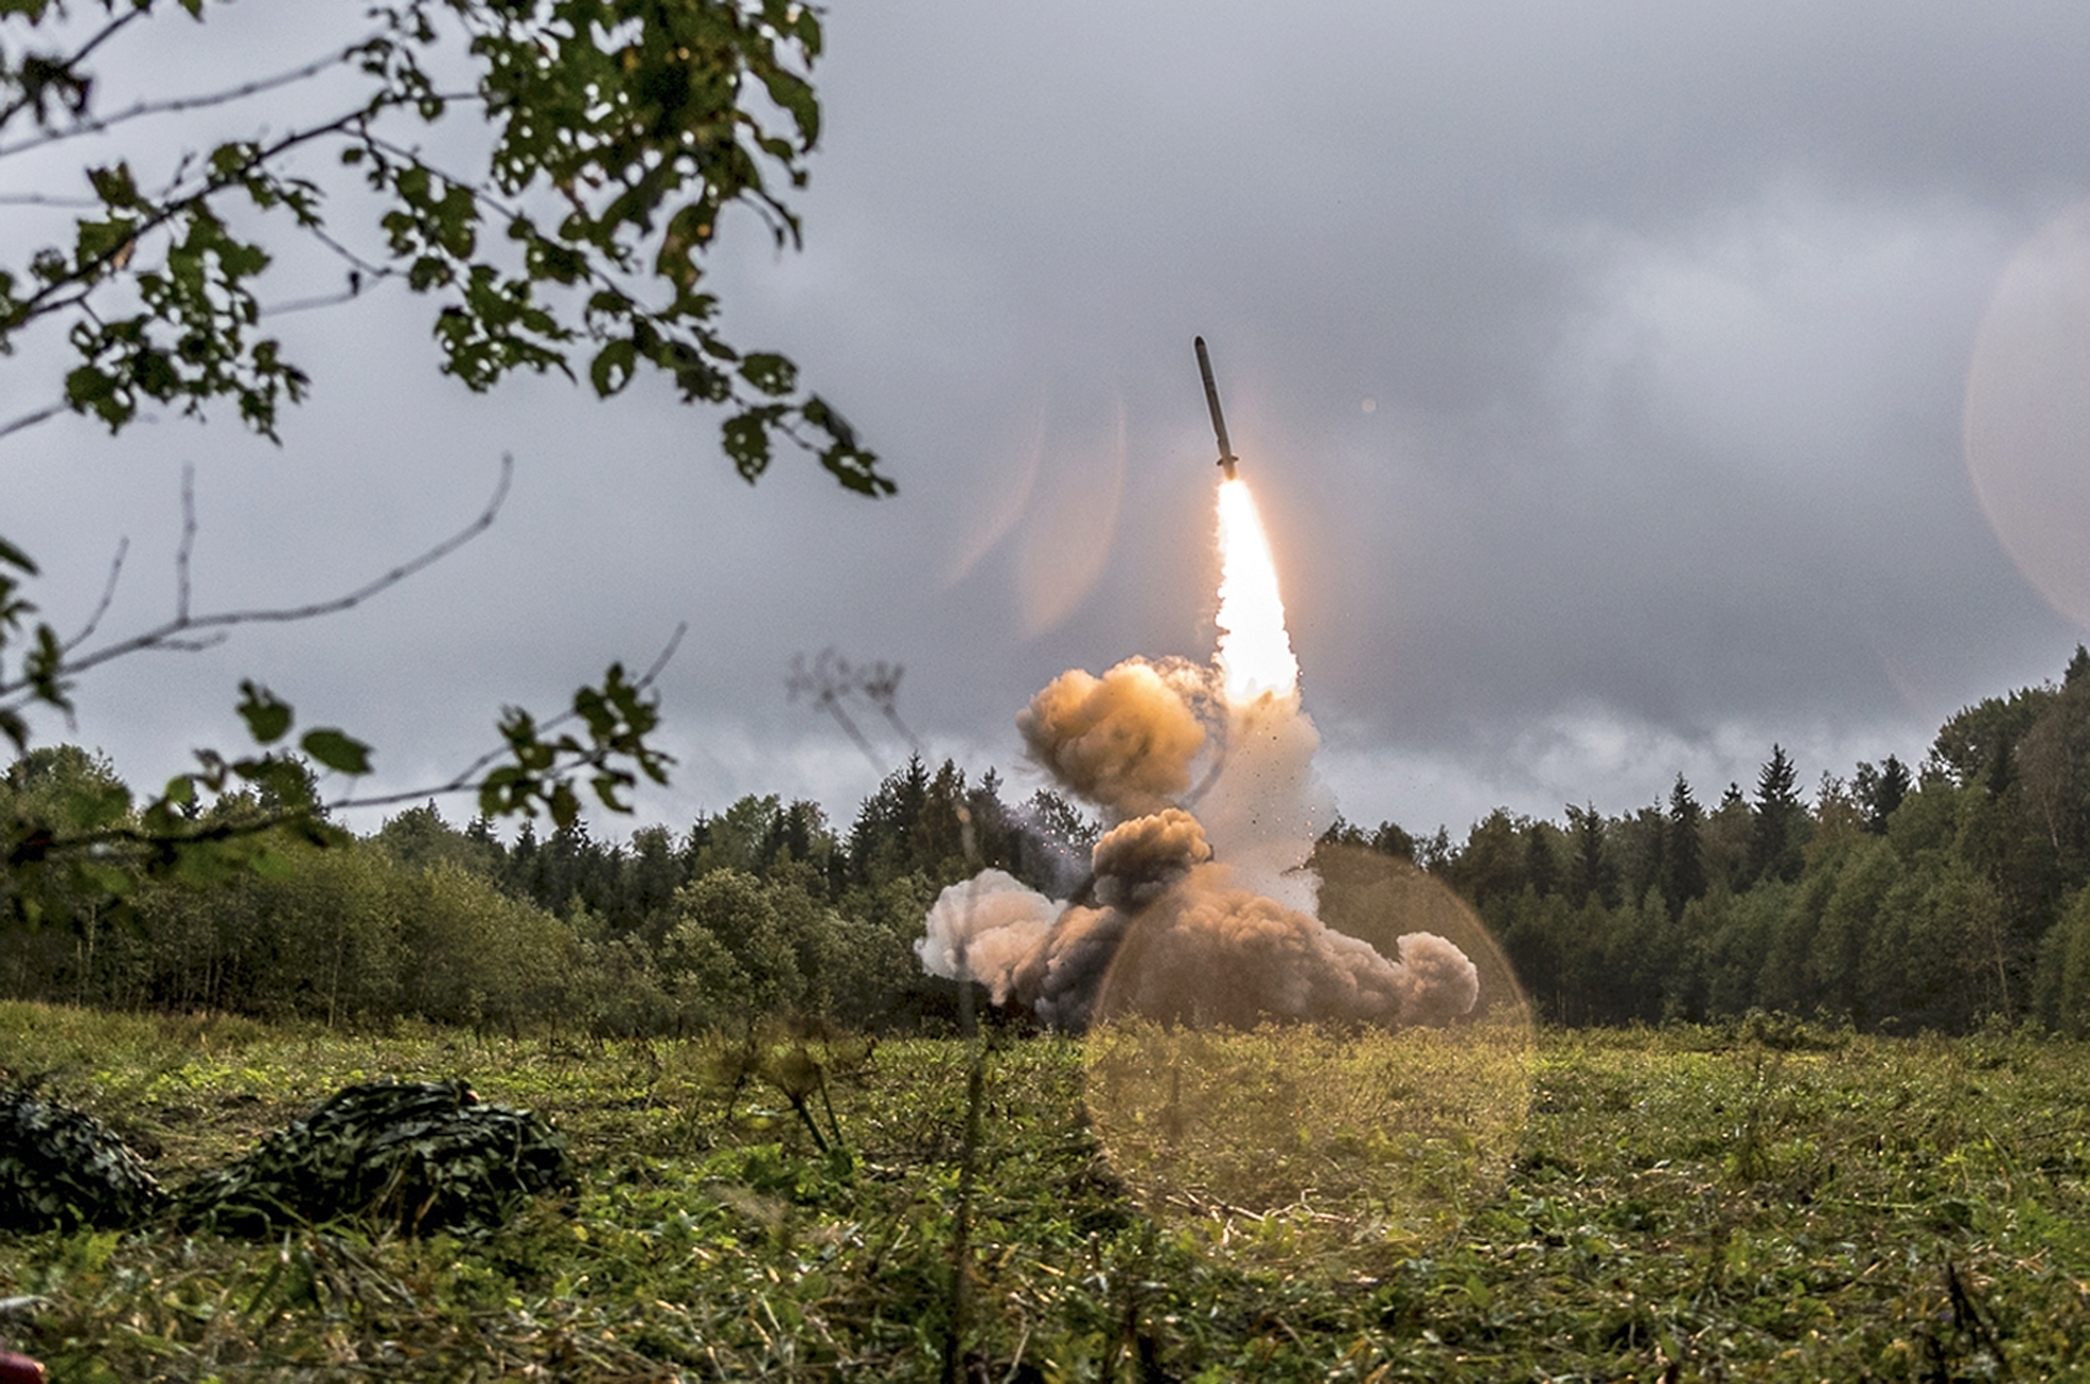 A Russian Iskander-K missile is launched during a military exercise at a training ground at the Luzhsky Range, near St. Petersburg, Russia, on Sept. 18, 2017. (Russian Defence Ministry Press Service/AP)